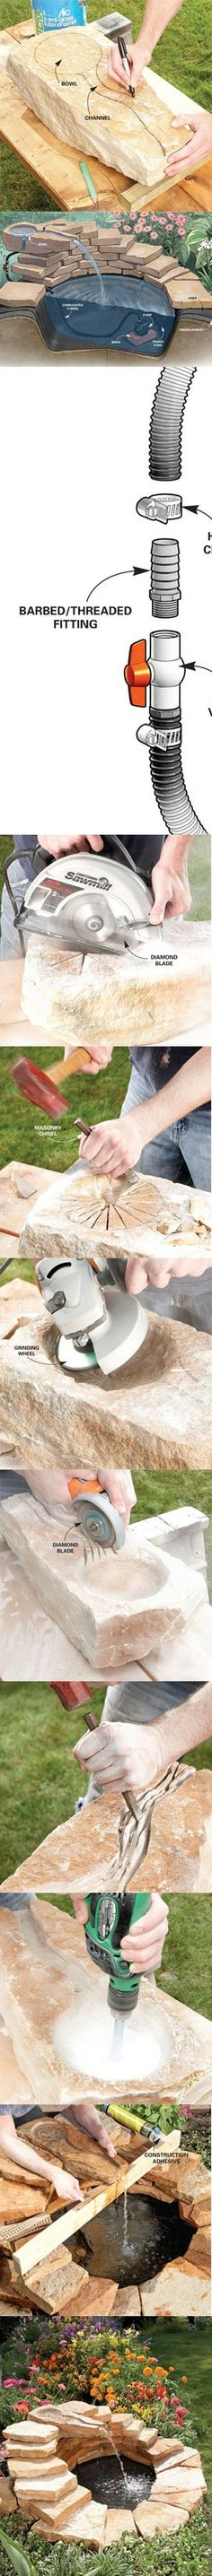 Learn how to build a concrete fountain at http://www.familyhandyman.com/DIY-Projects/Outdoor-Projects/Water-Features/Fountains/fountain-how-to-build-a-concrete-fountain/View-All